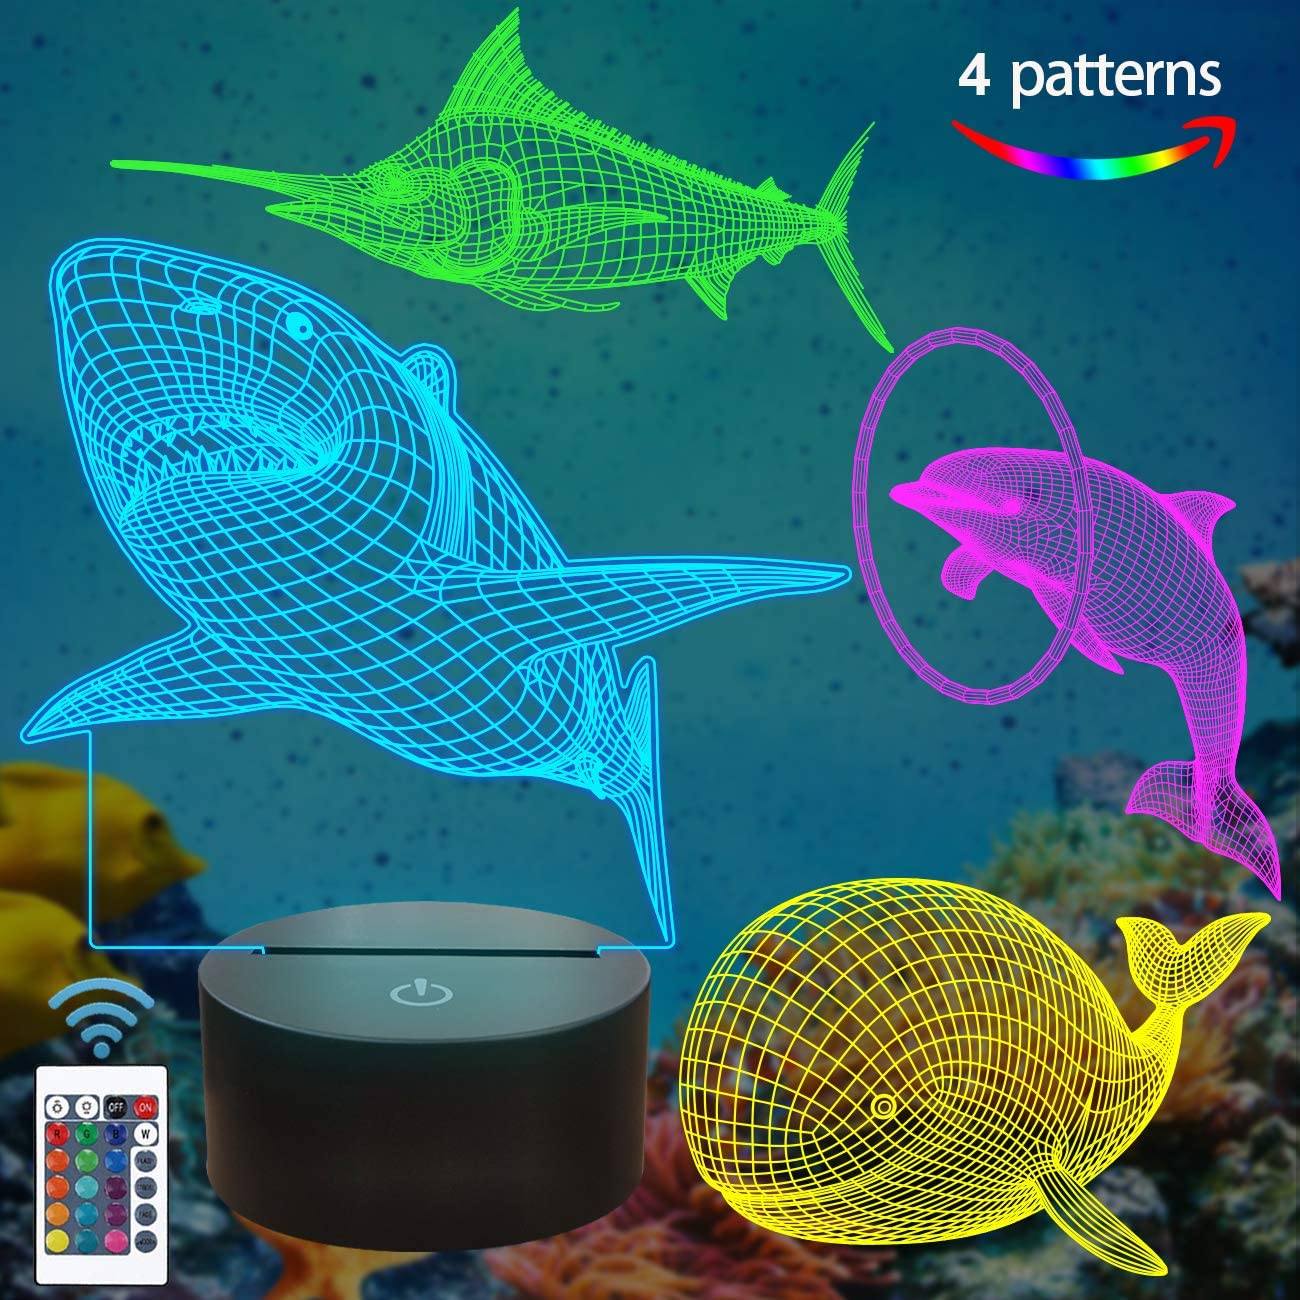 Lampeez Ocean Sea Animals 3D Lamp Kits,Dolphin, Marlin,Shark,Whale 3D Night Light for Kids (4 Patterns) with Remote Control & 16 Colors Changing & Dimmable Function & Xmas Birthday Gifts for Boy Girl